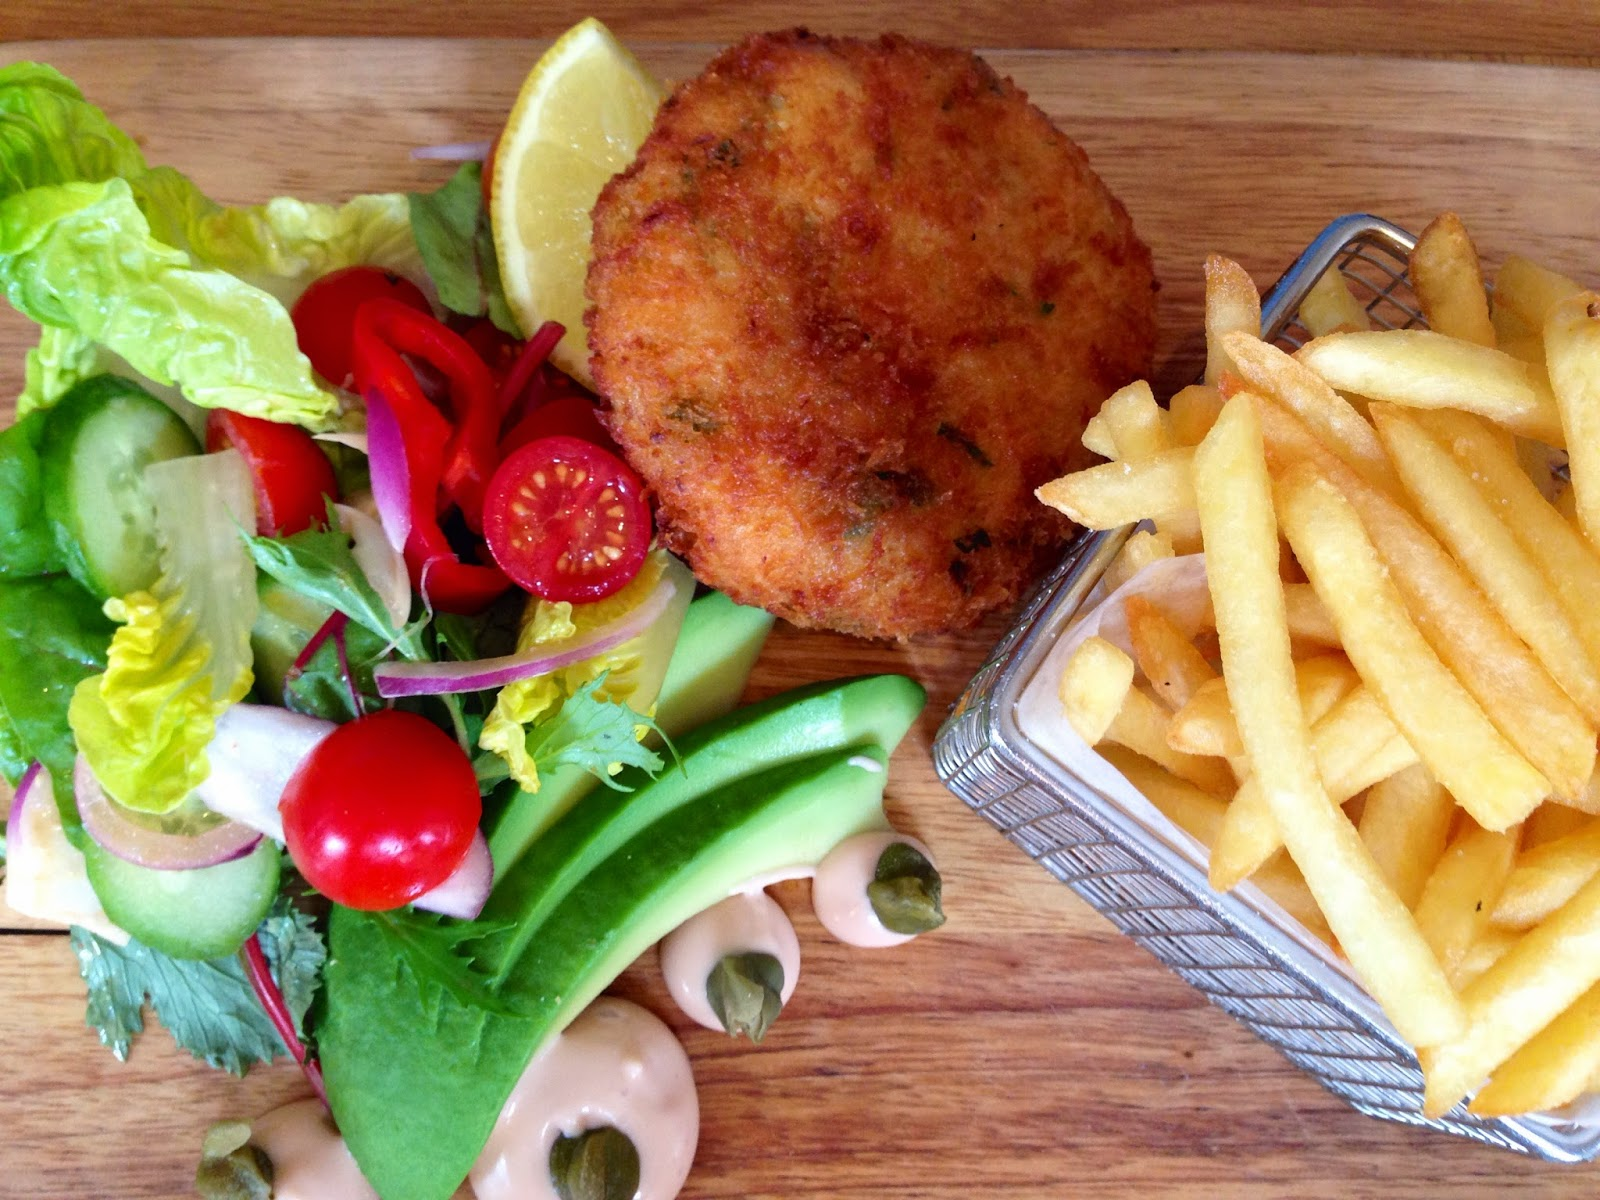 Fishcake, salad and skinny fries at the Grey Lady Kitchen and Deli